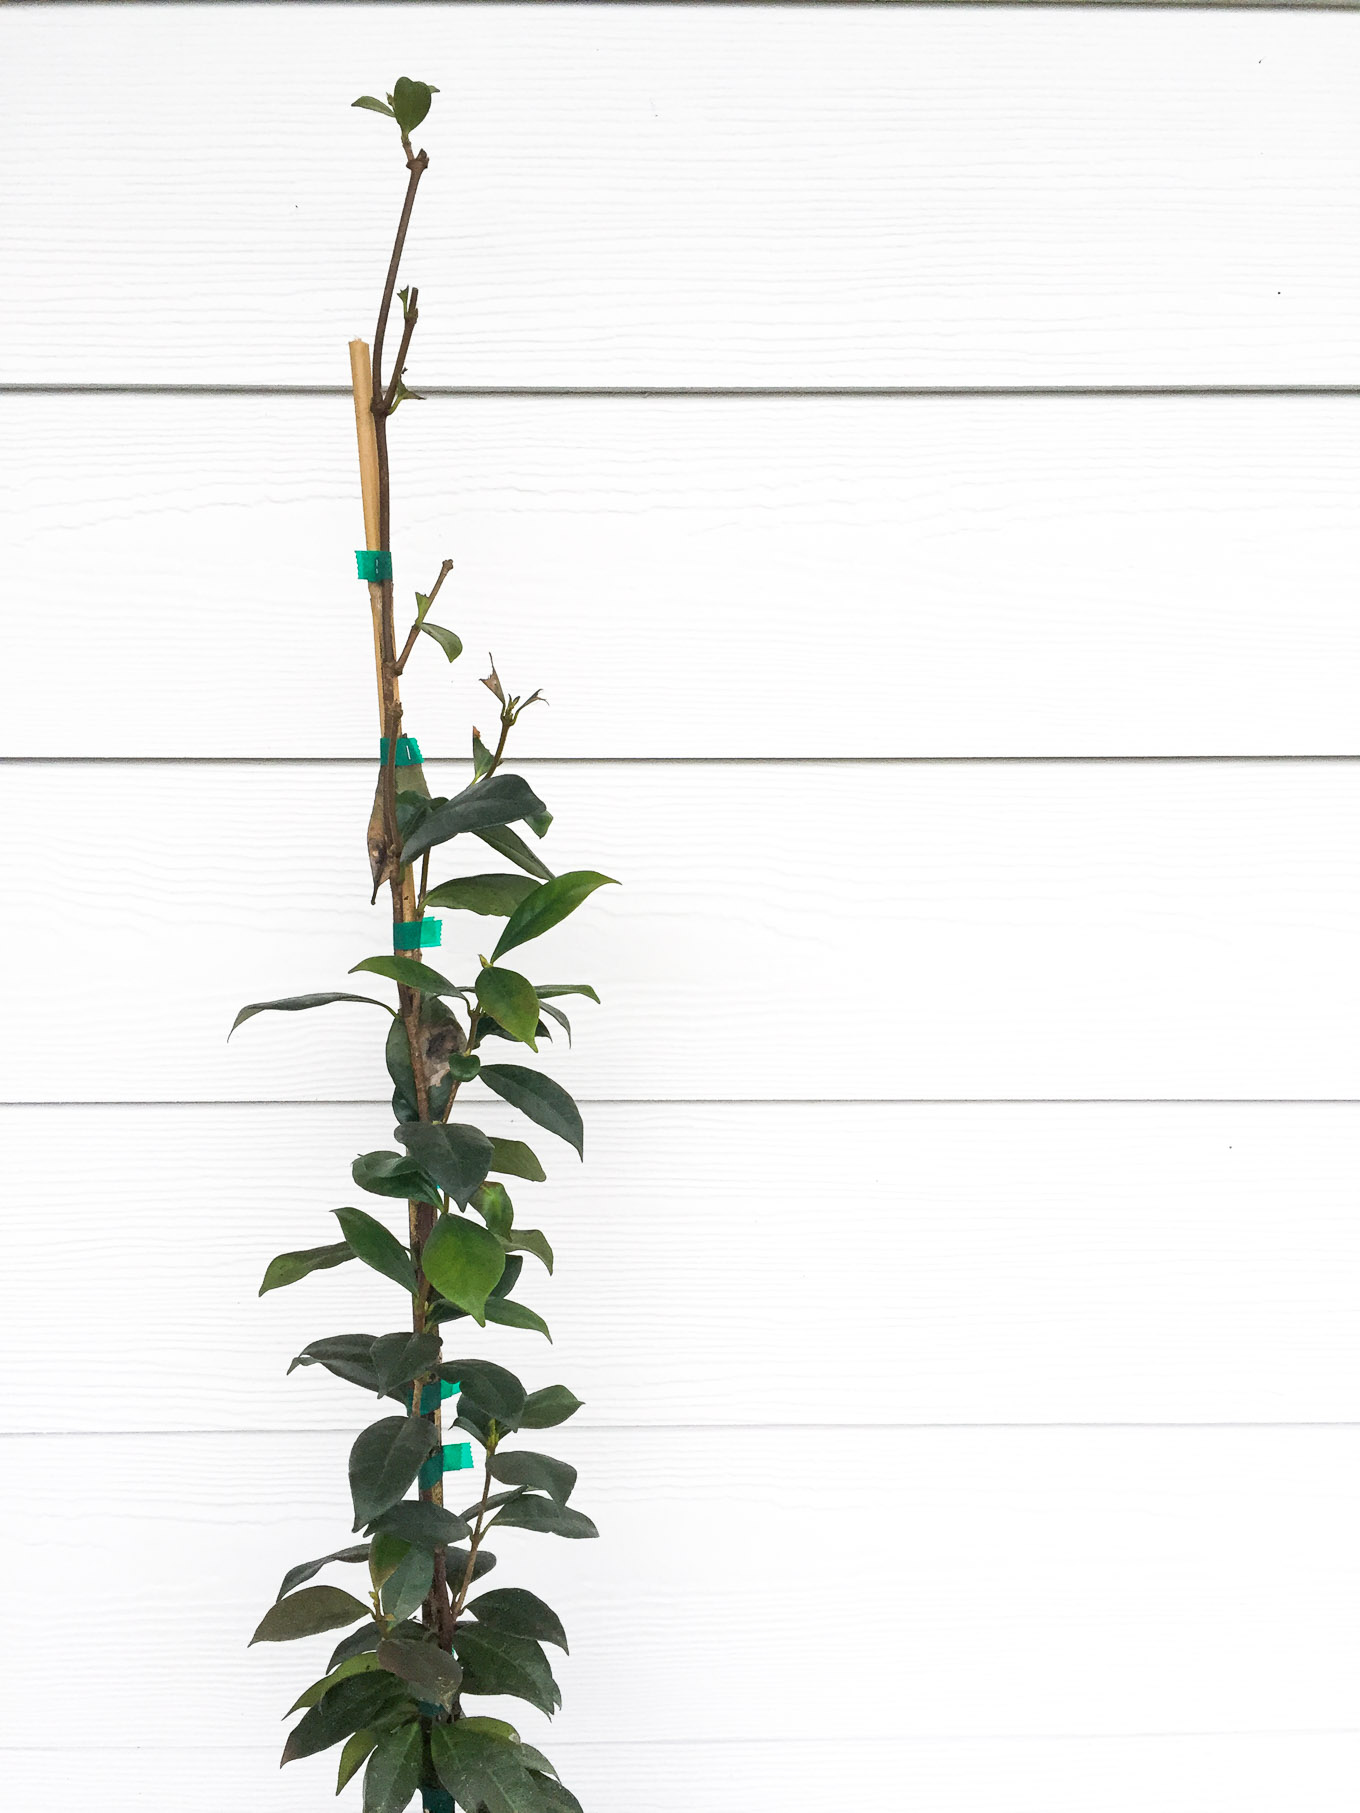 landscaping ideas for a narrow front yard, including star jasmine, dwarf italian cypress, and more